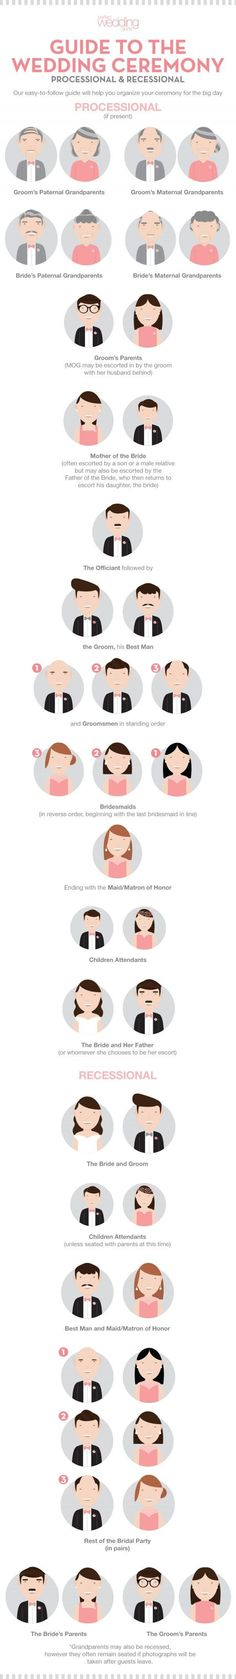 Whether it's the MOH, FOB or the Officiant, everyone has a specific time to walk down the aisle. Here's an infographic explaining the wedding ceremony order.